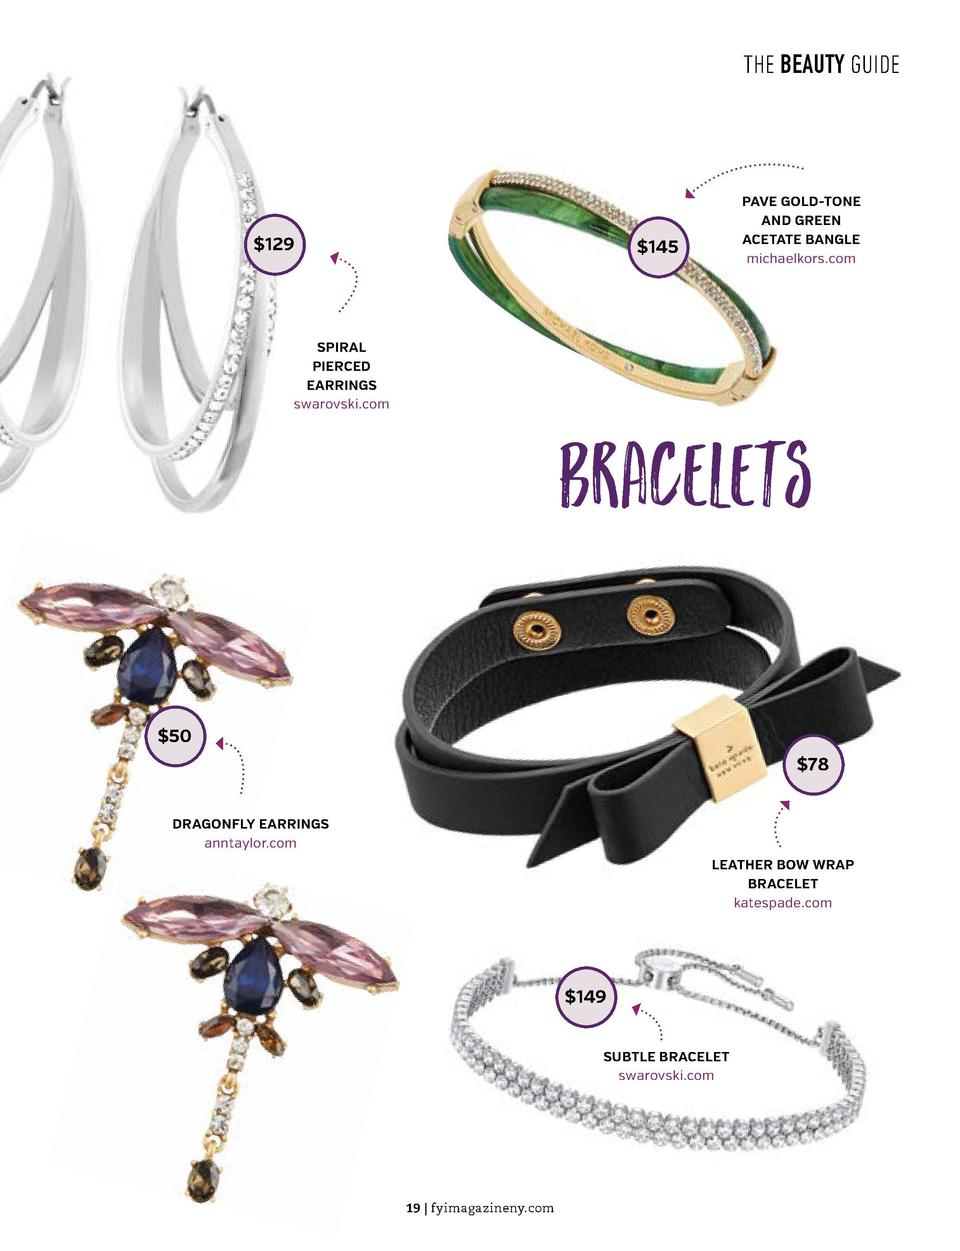 THE BEAUTY GUIDE  THE BEAUTY GUIDE  Necklaces   129  PAVE GOLD-TONE AND GREEN ACETATE BANGLE michaelkors.com   145   48 SP...